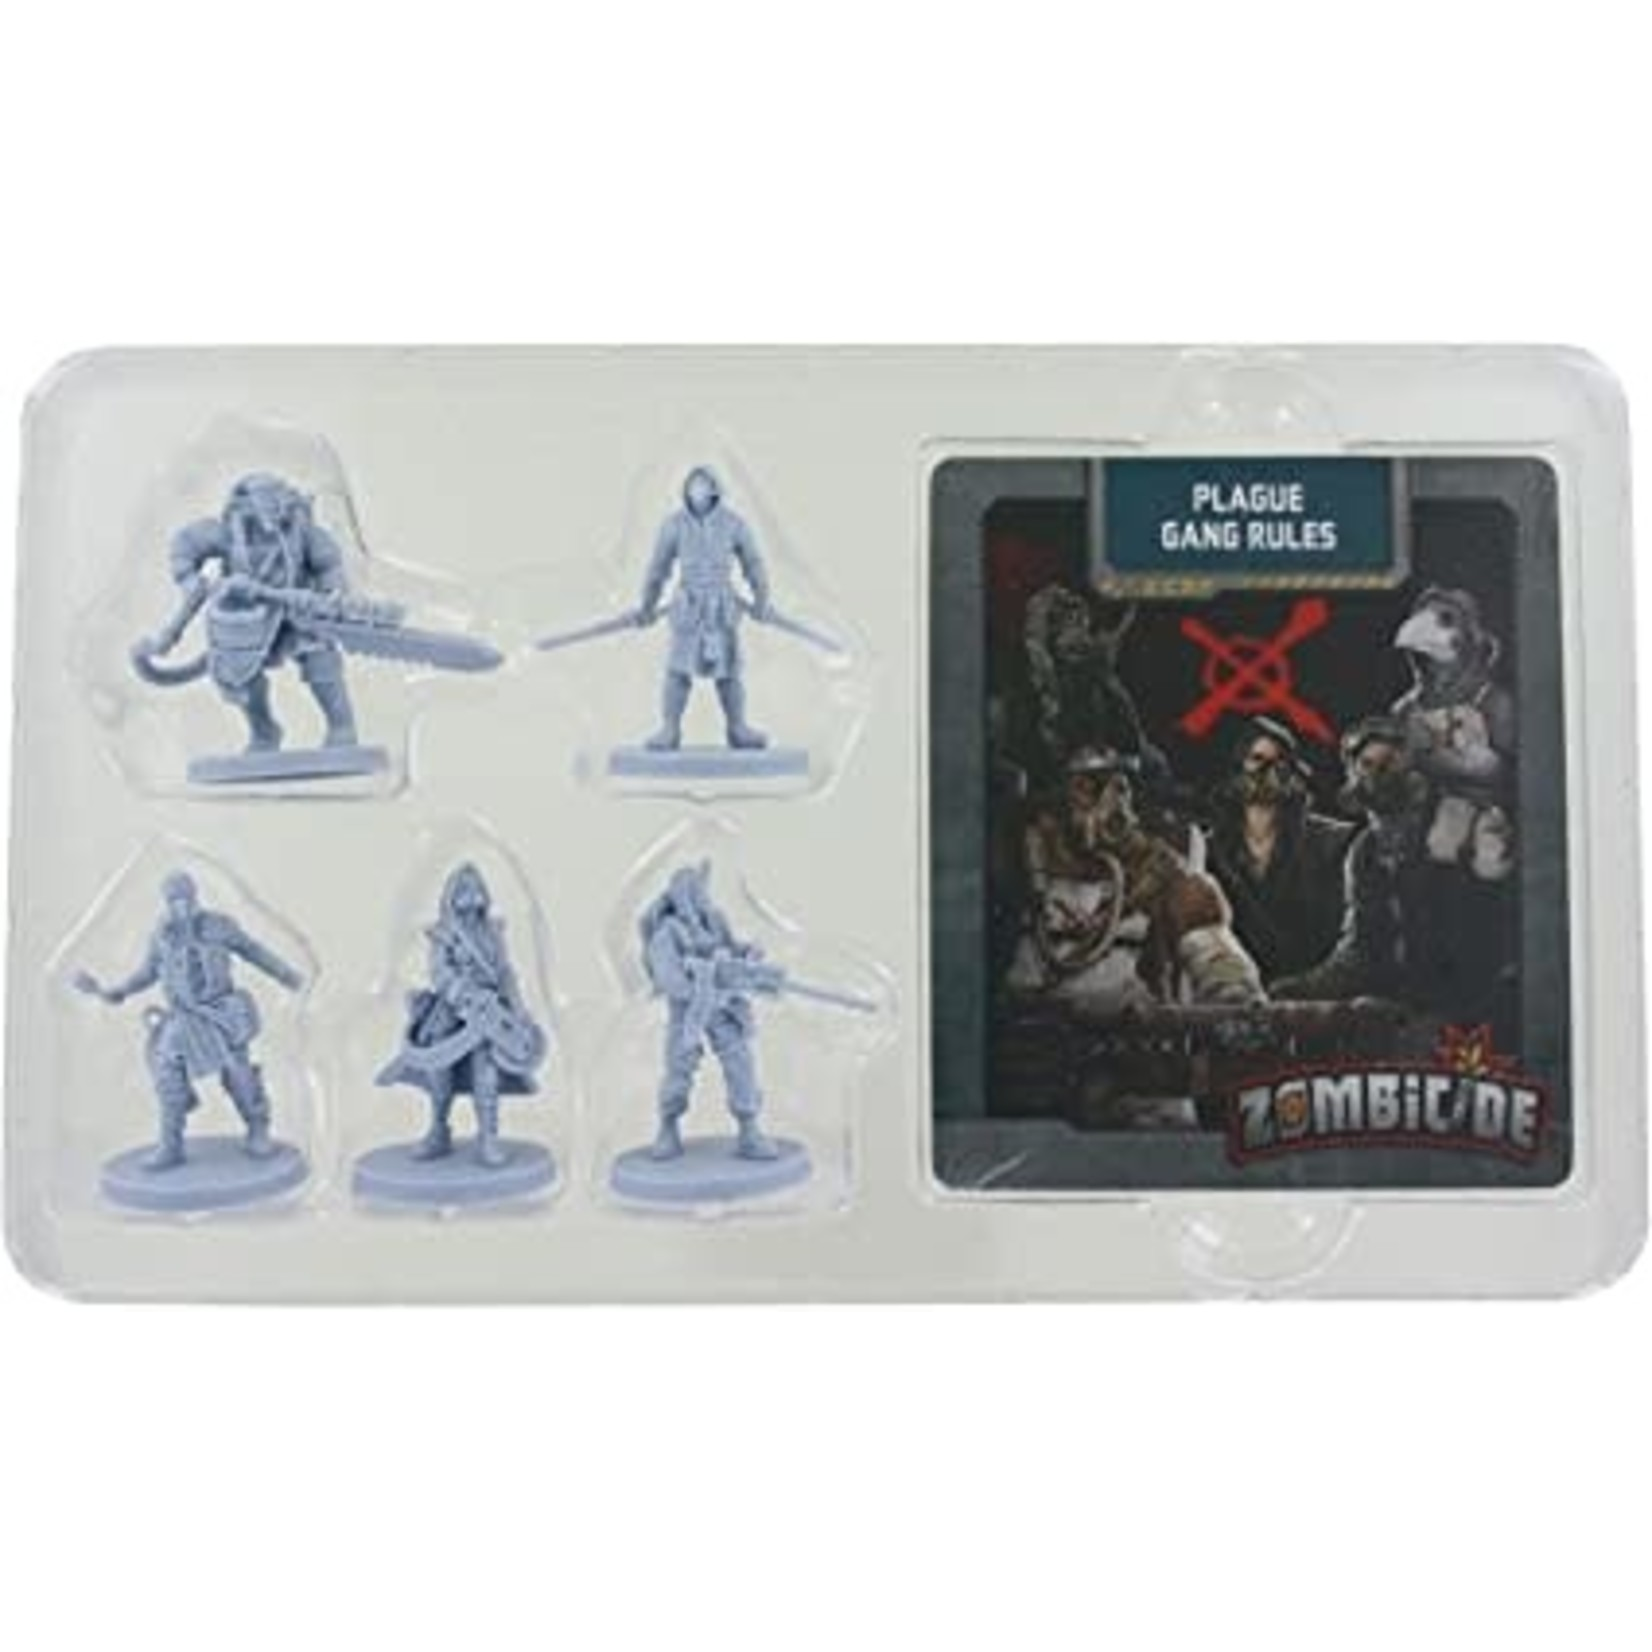 CMON Zombicide Invader: Plague Survivor (Kickstarter edition)